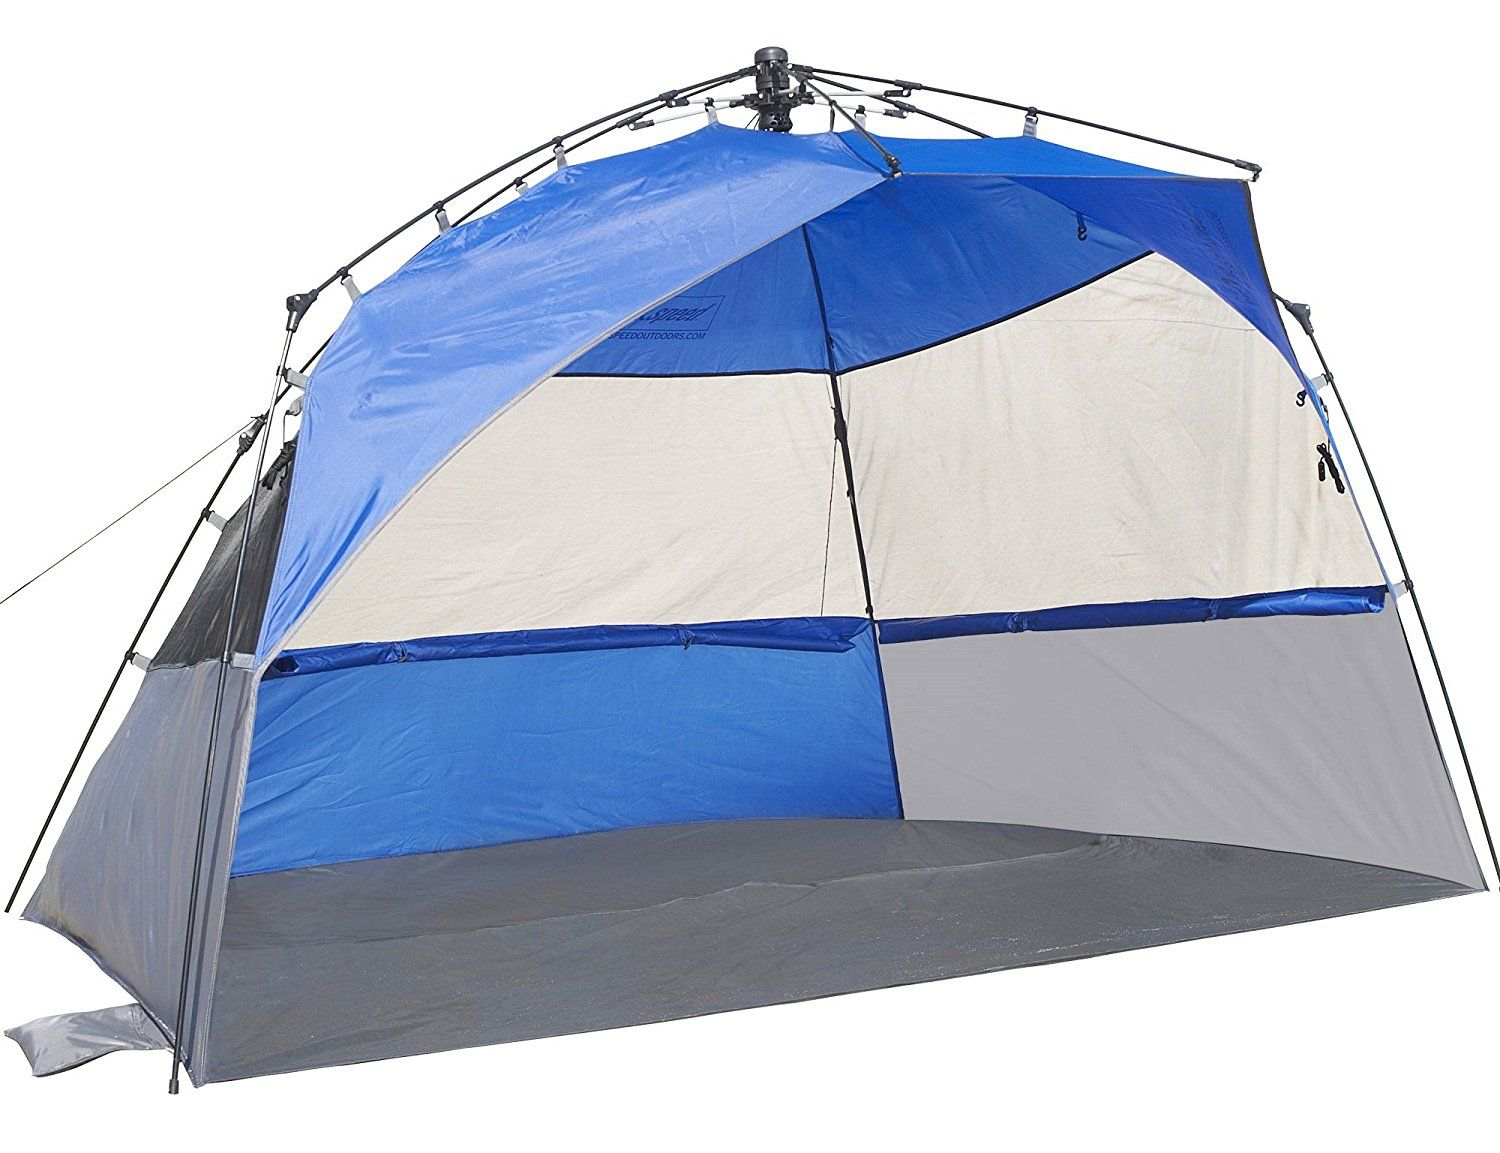 Lightspeed Outdoors Pop Up Sport Shelter Beach Tent *** Read more at the image  sc 1 st  Pinterest & Lightspeed Outdoors Pop Up Sport Shelter Beach Tent *** Read more ...